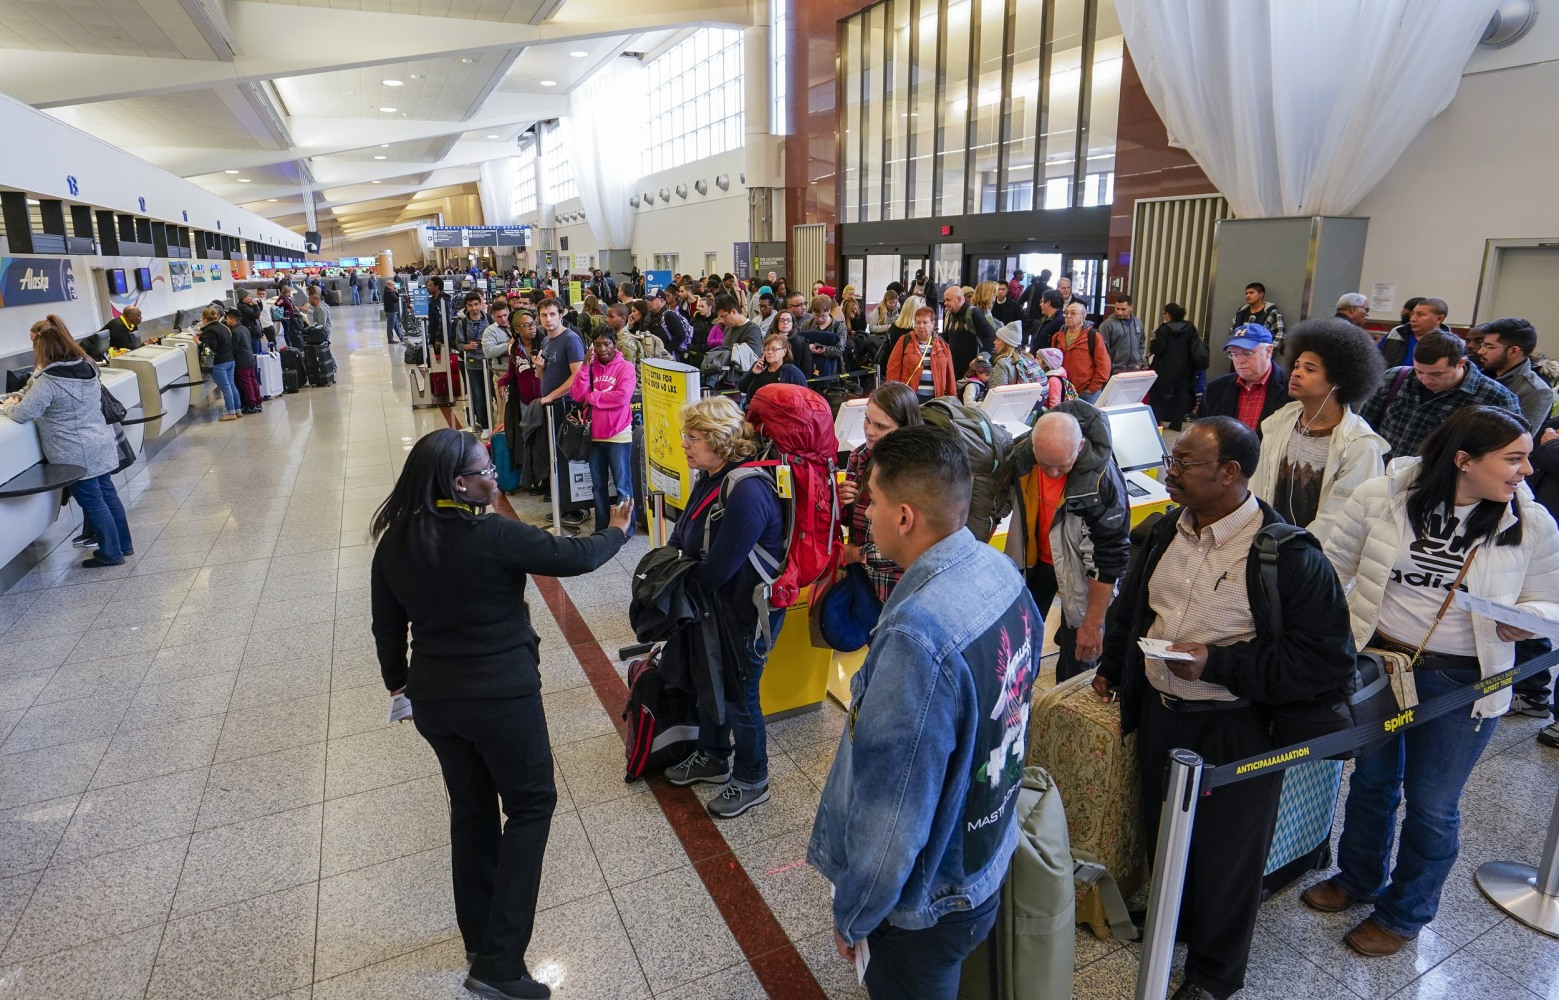 Federal Officials Not Ruling Out Terrorism in Probe of Atlanta Airport Outage